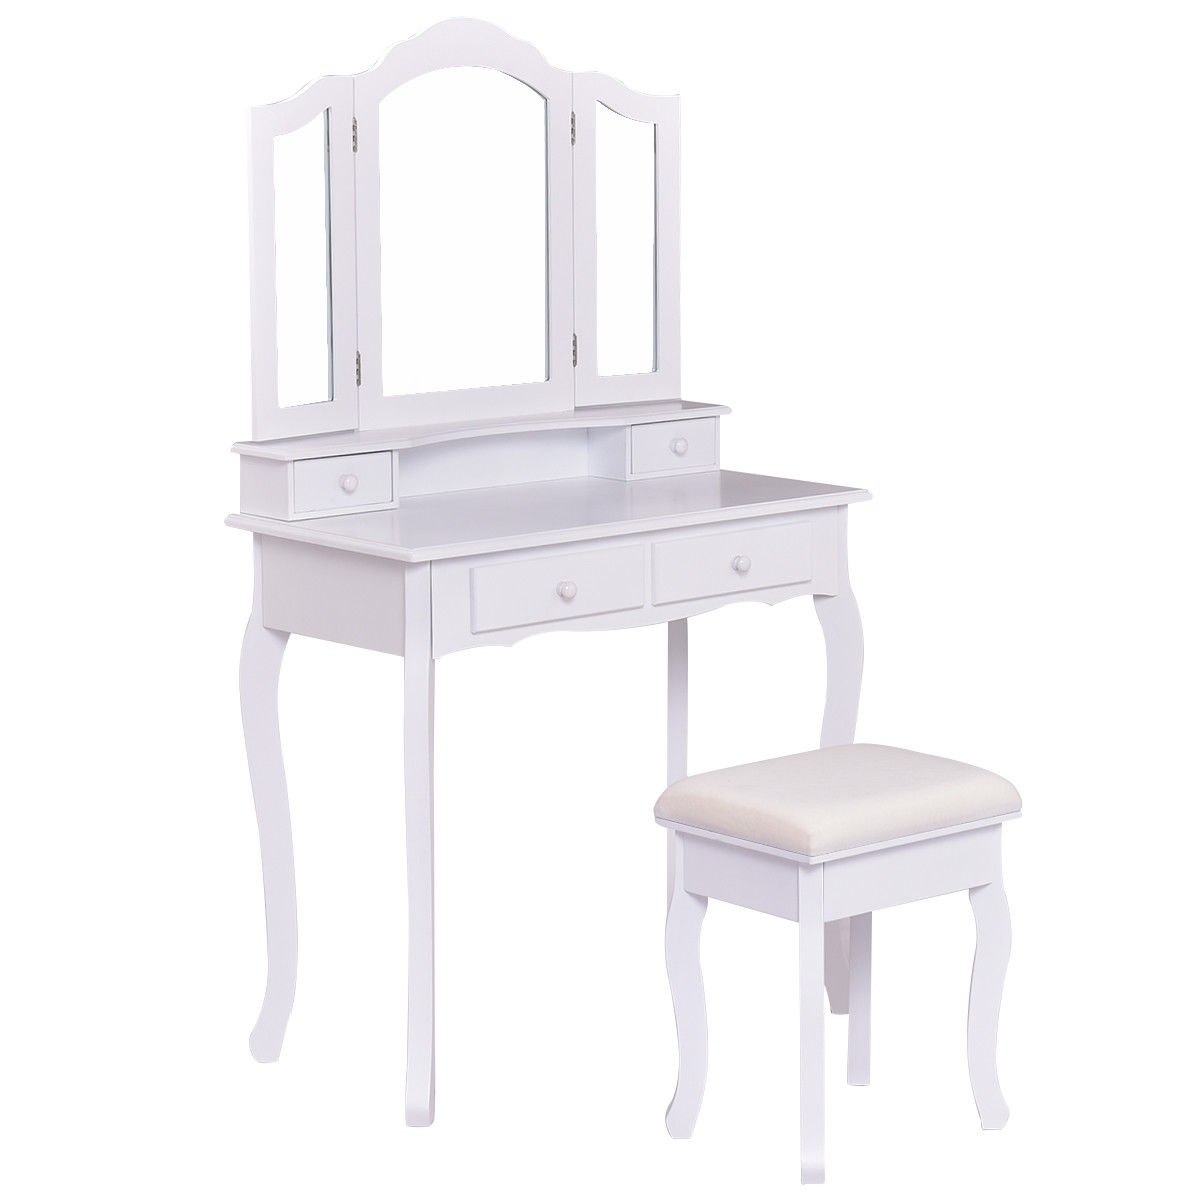 Gymax Bathroom Vanity Jewelry Makeup Dressing Table Set With Stool 4 Drawer Folding Mirror White by Gymax